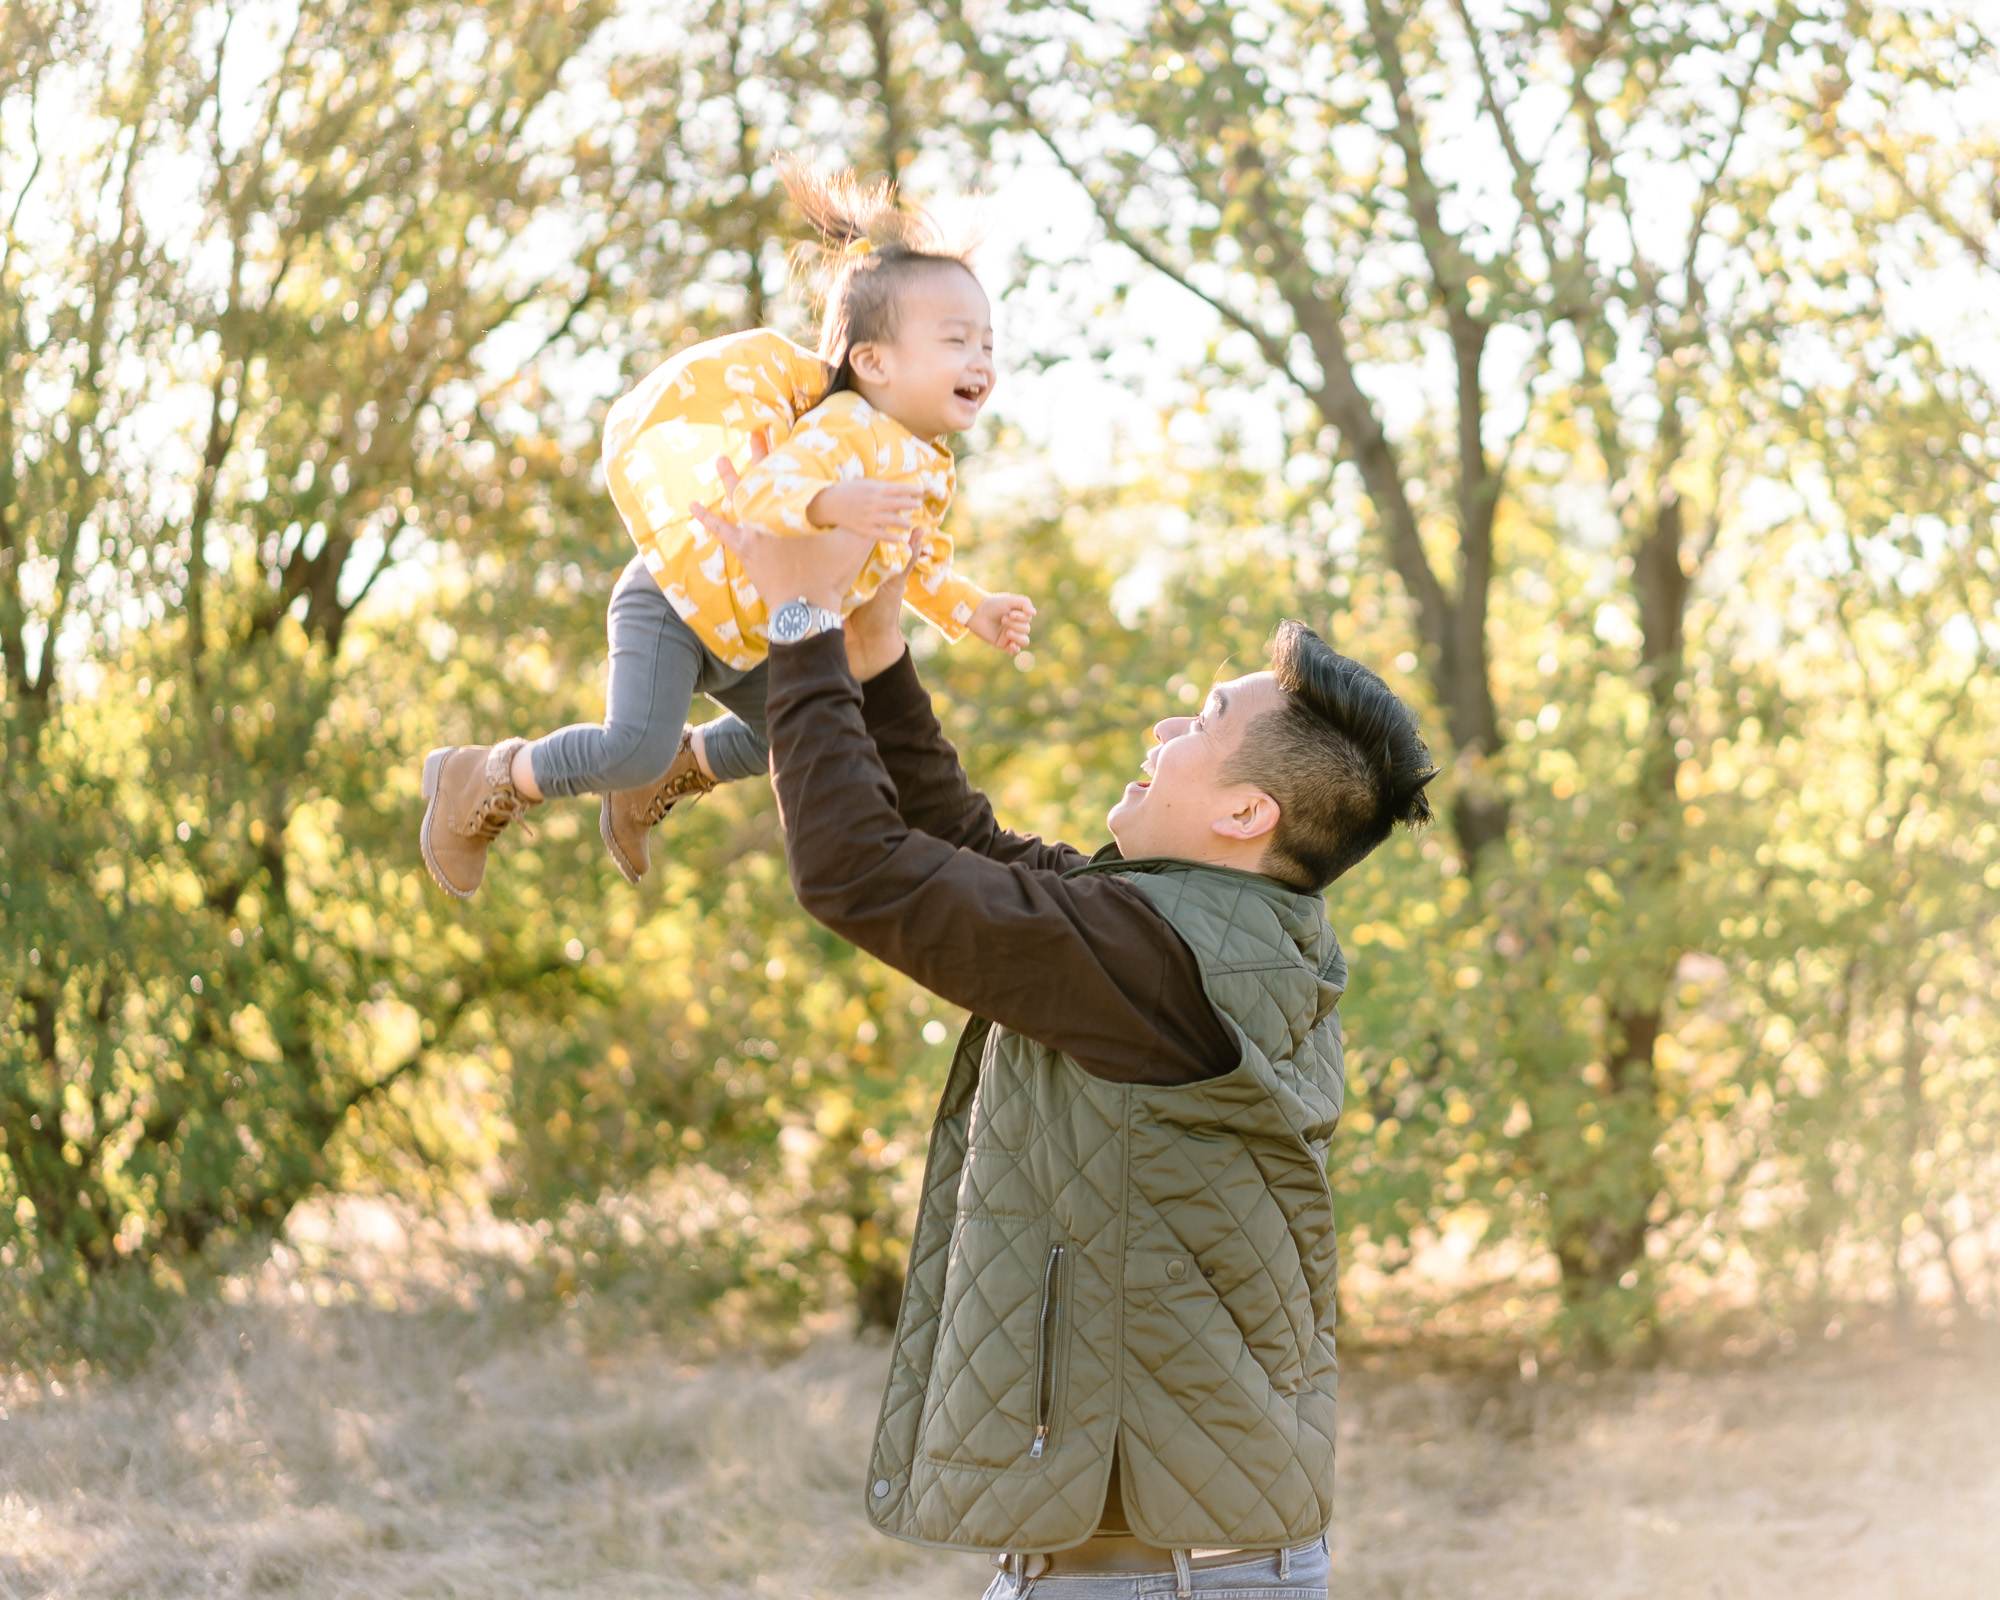 Father lifts his daughter in the air